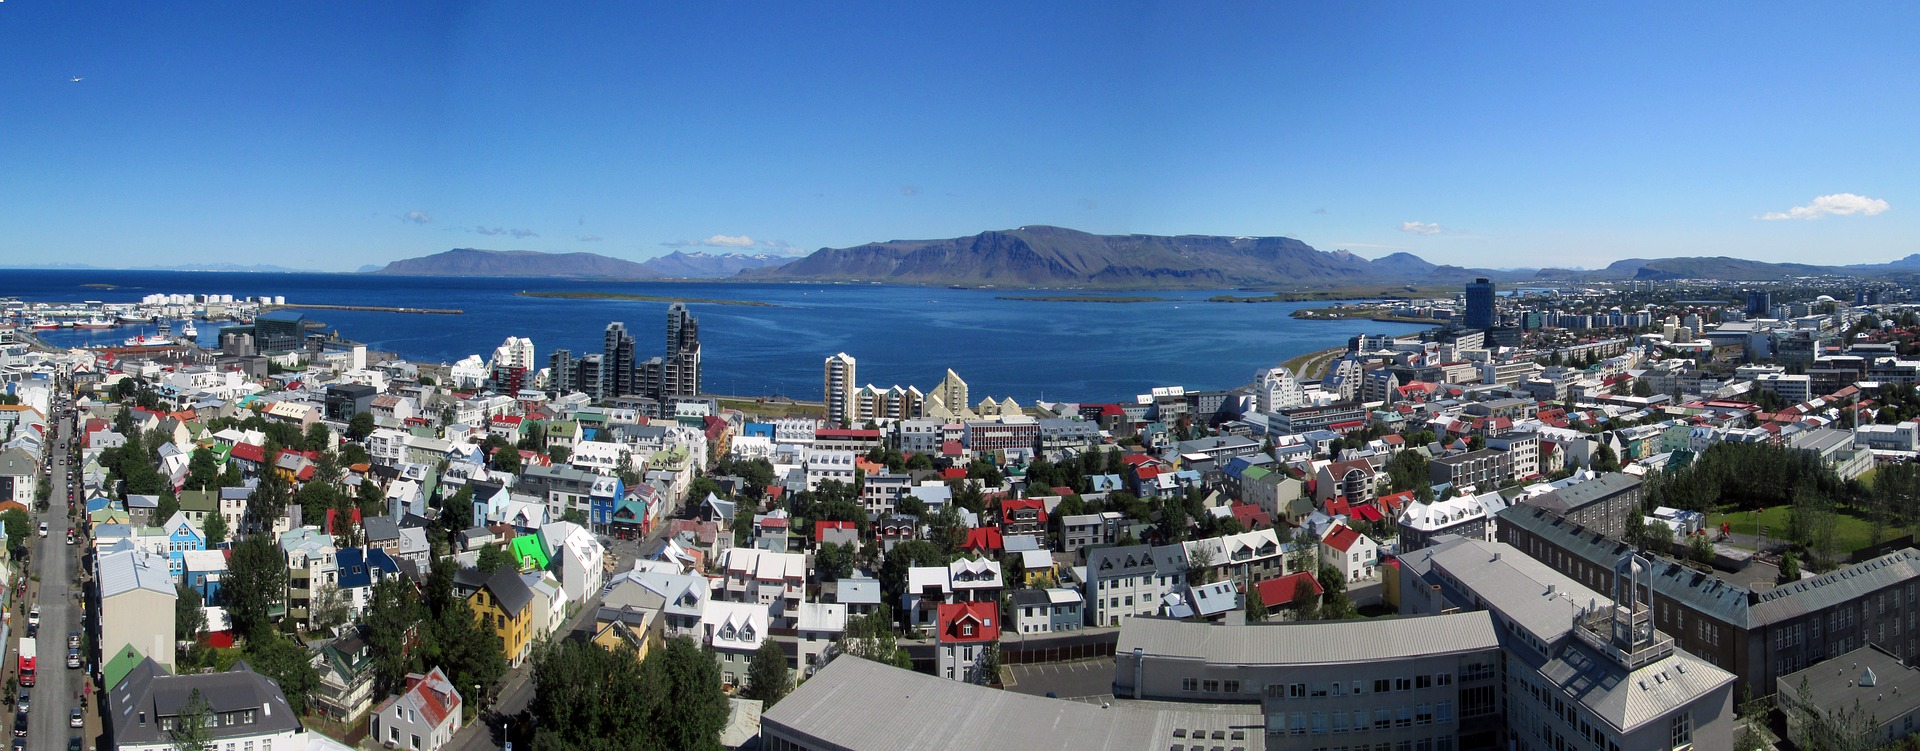 Reykjavik from above on a sunny day